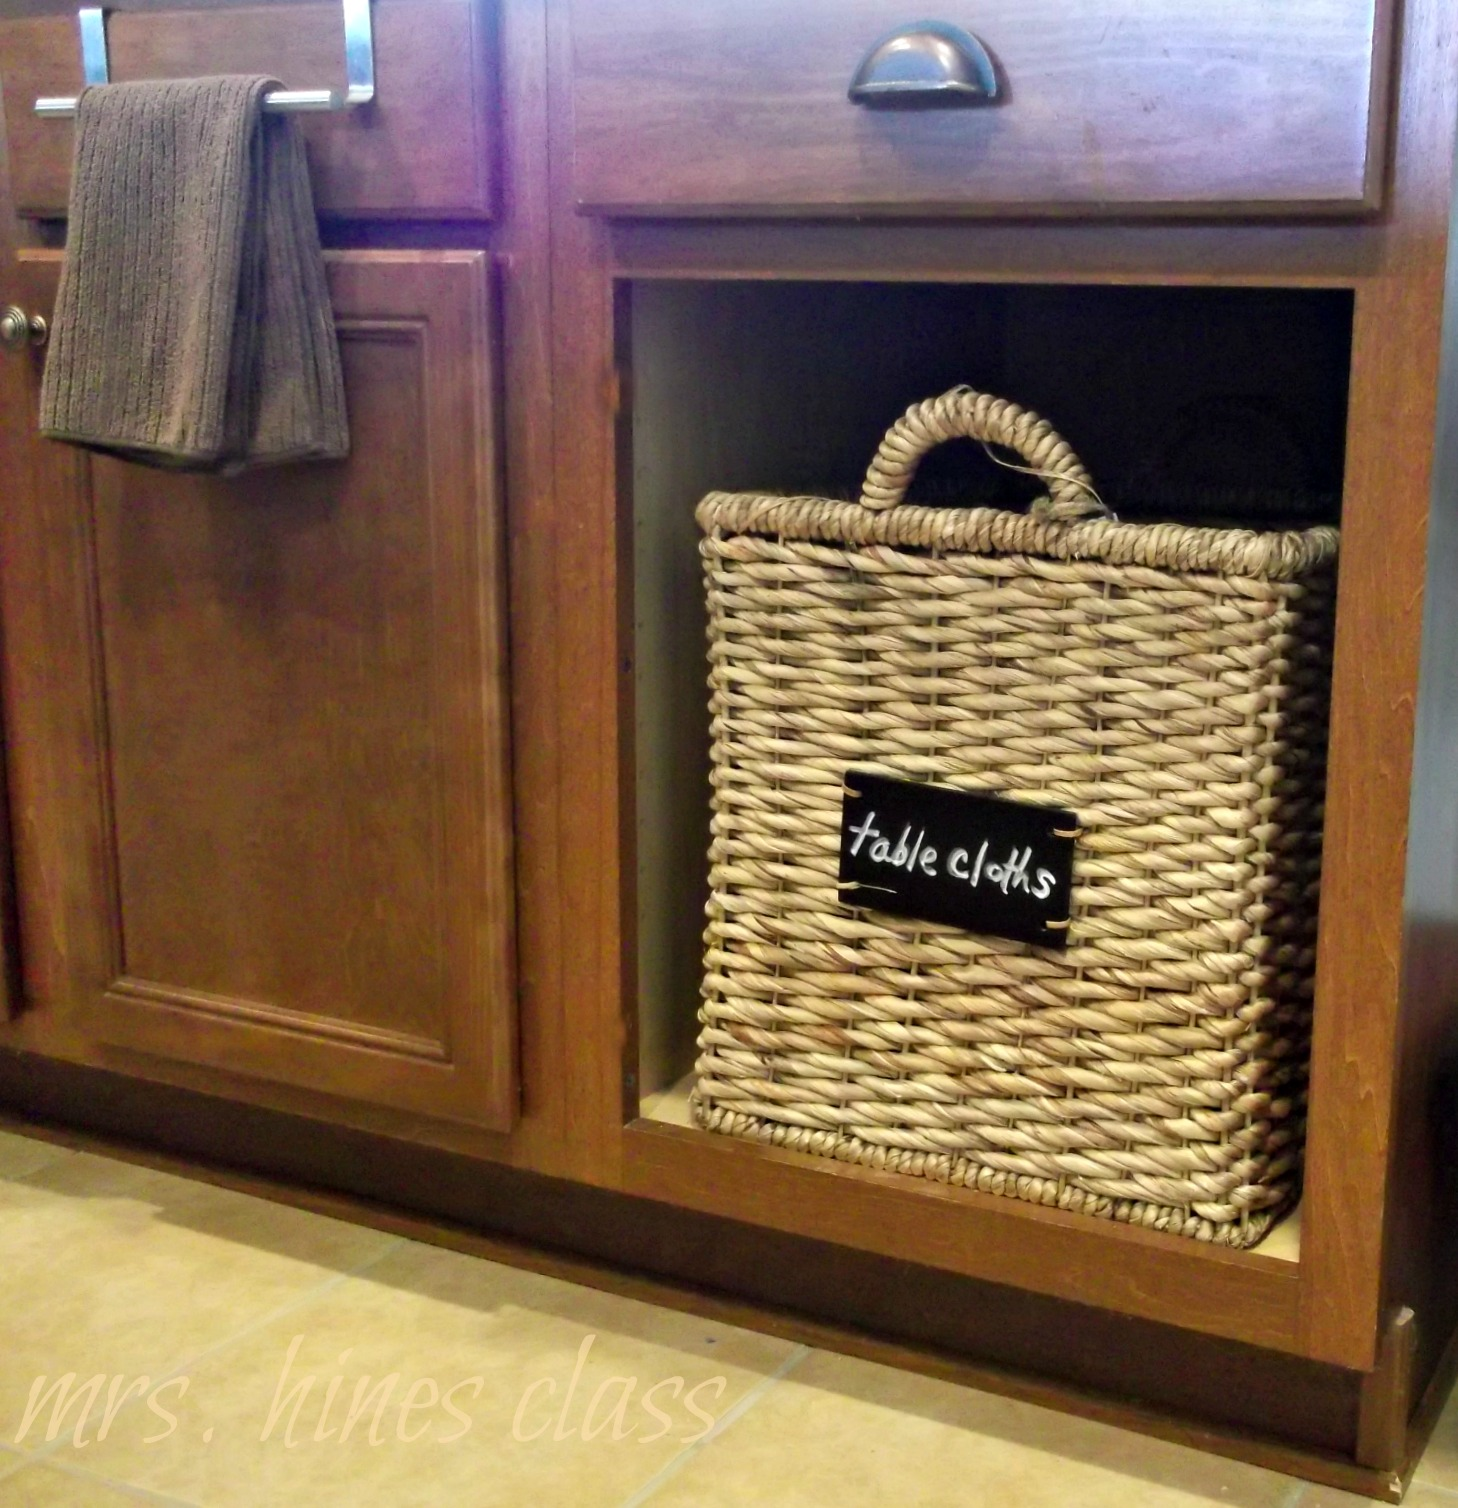 Find 8 Ways to Organize with Baskets at Sharon E. Hines